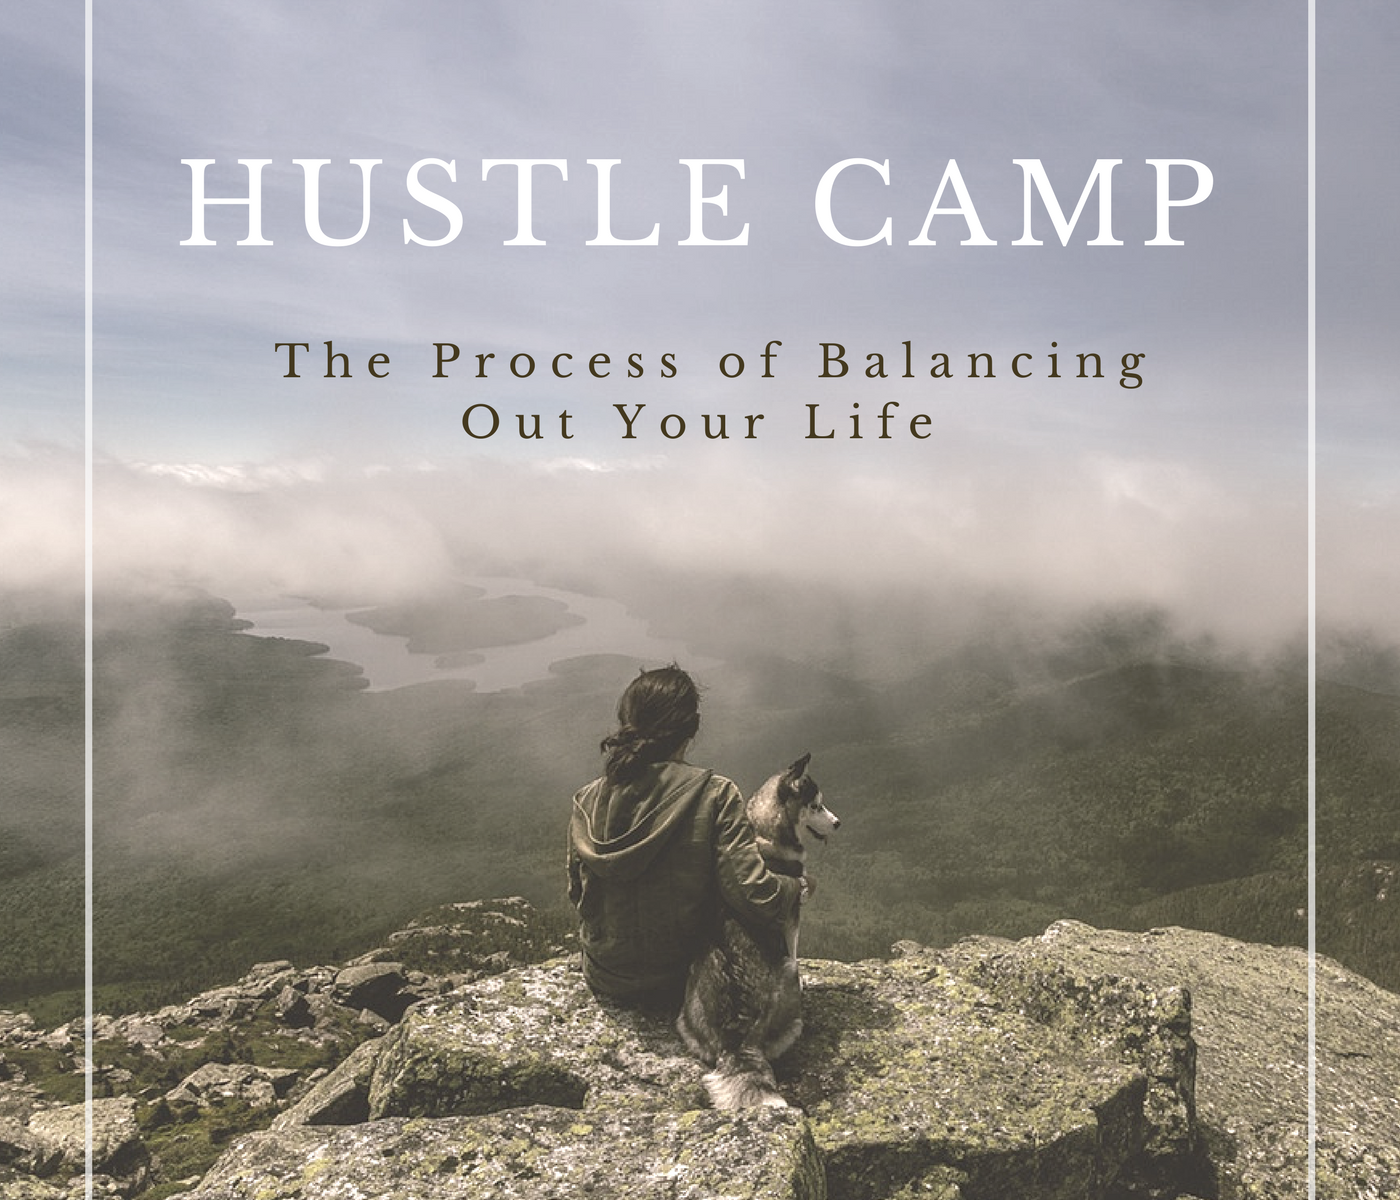 Hustle Camp - The Process of Balancing Out Your Life